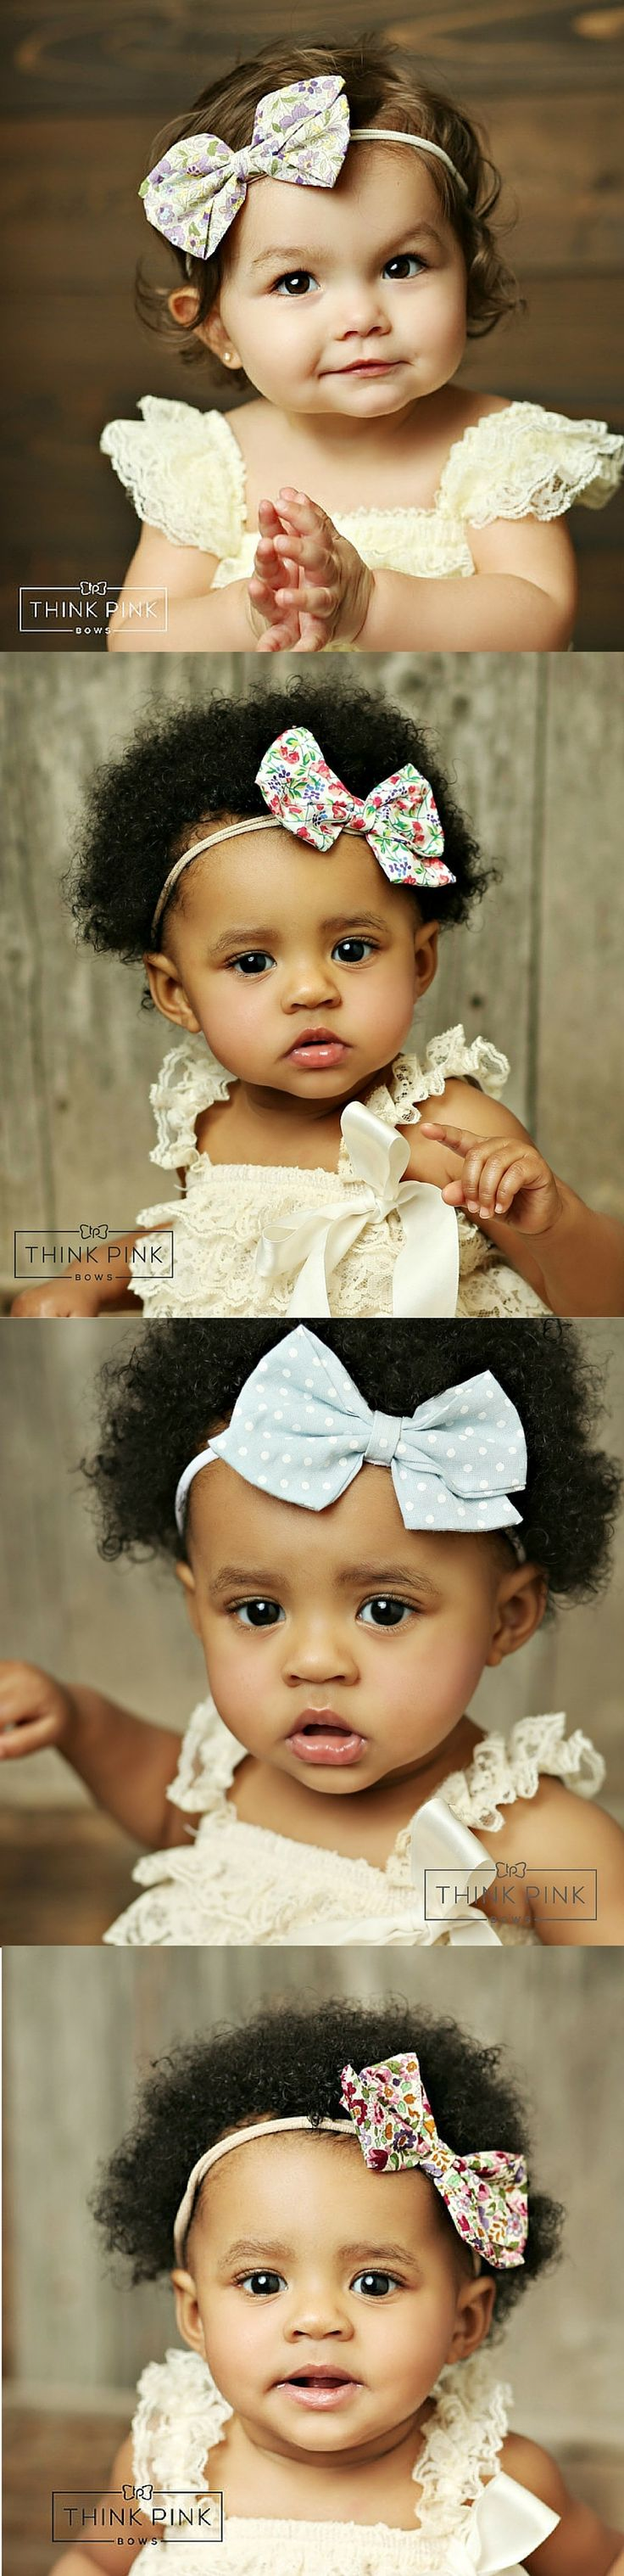 These skinny nylon headbands are so soft and stretchy they will not leave any marks on your babies head. Elegant and timeless! Explore hairbands for little girls at http://thinkpinkbows.com/products/vivian-style-boutique-bow-on-skinny-nylon-headband-28-styles-available | Kids Fashion